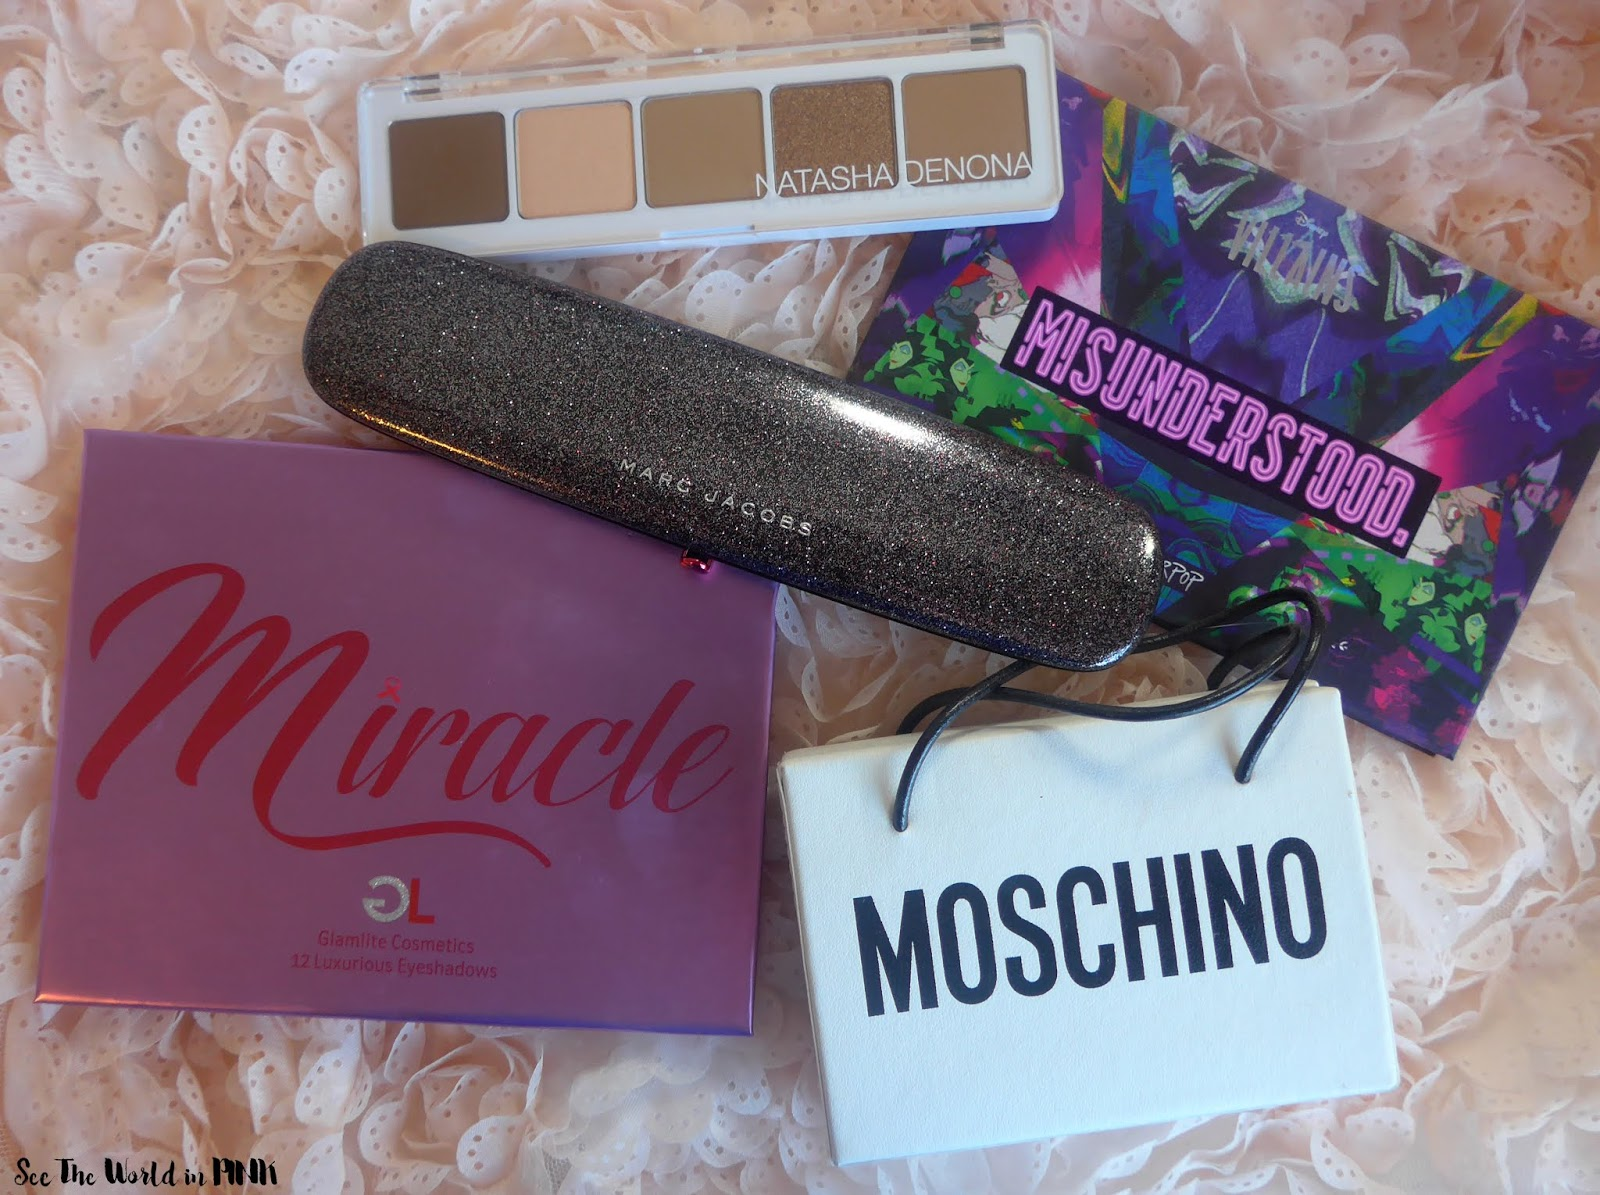 Five on Saturday - March 14, 2020 ~ Natasha Denona, ColourPop, Marc Jacobs Beauty, Glamlite Cosmetics and Moschino + Sephora Collection palettes!